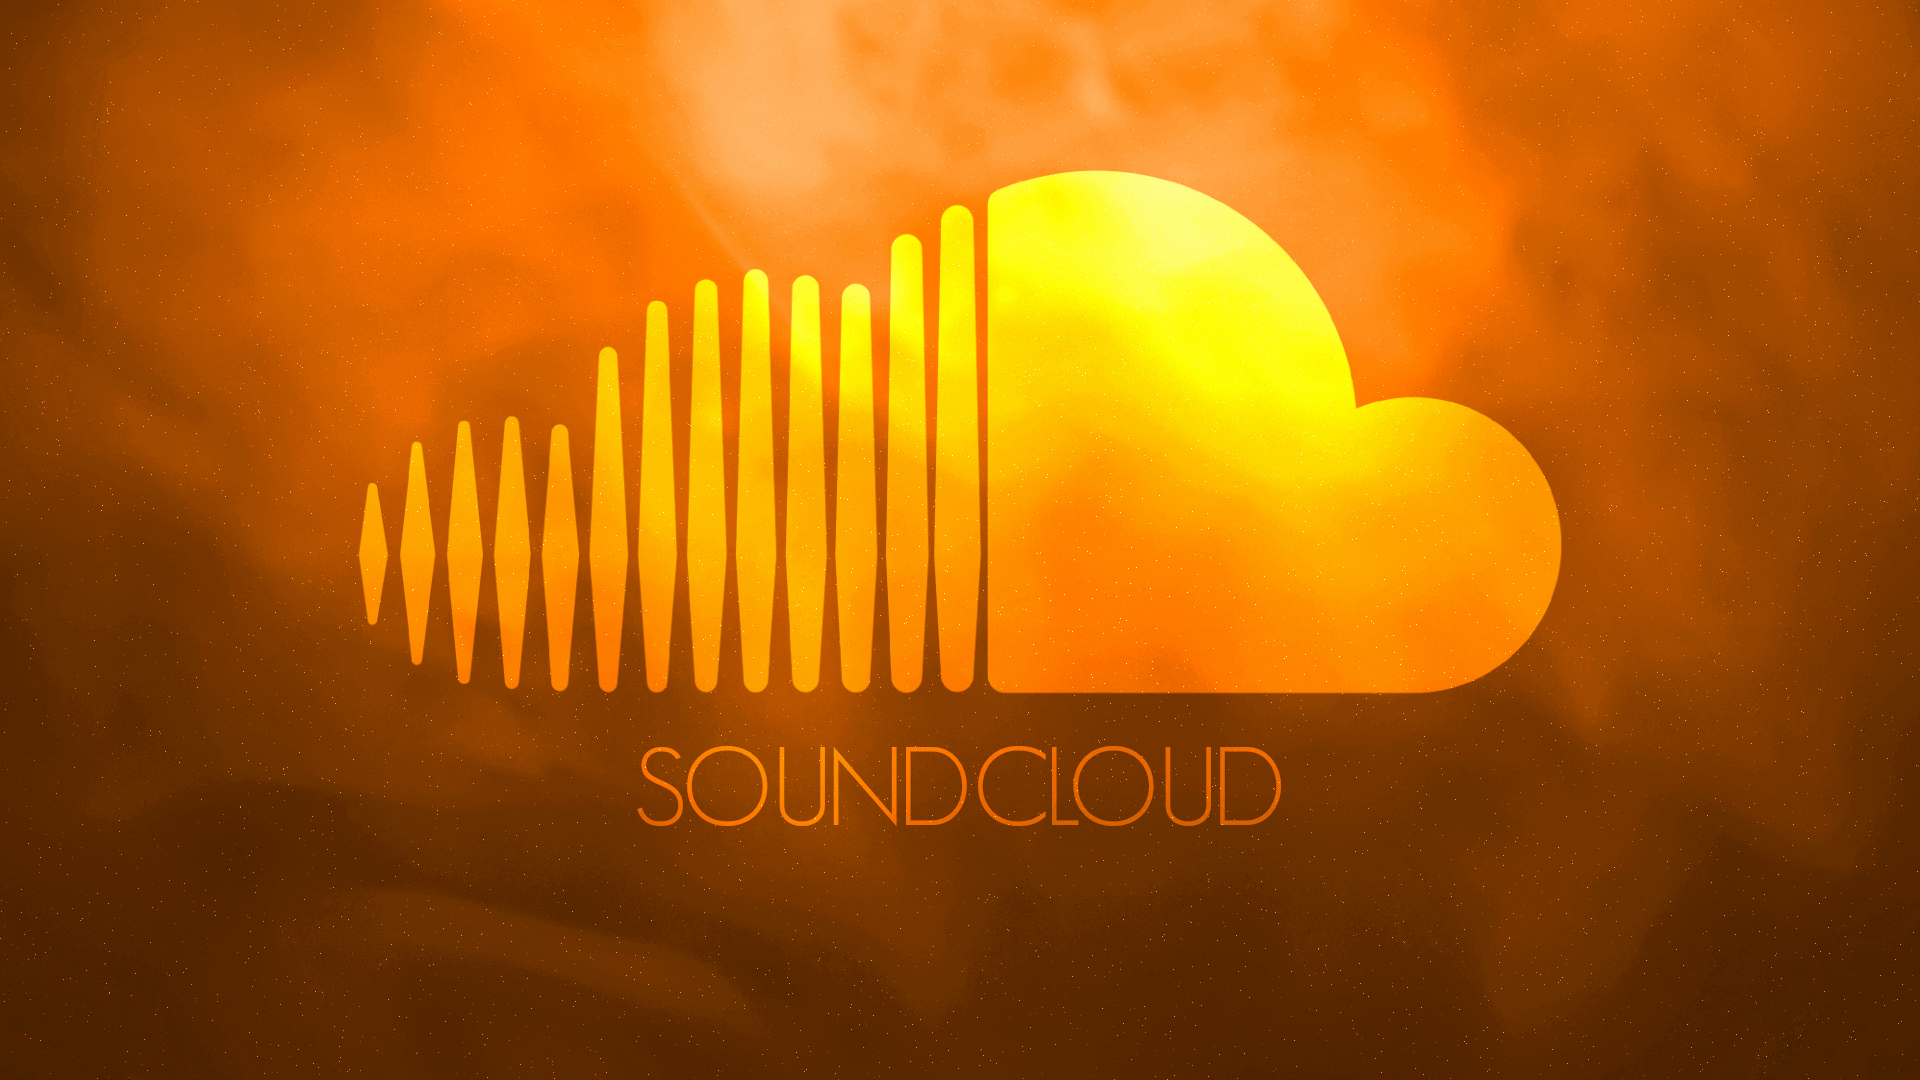 Timed soundcloud track promotion for every music song etc